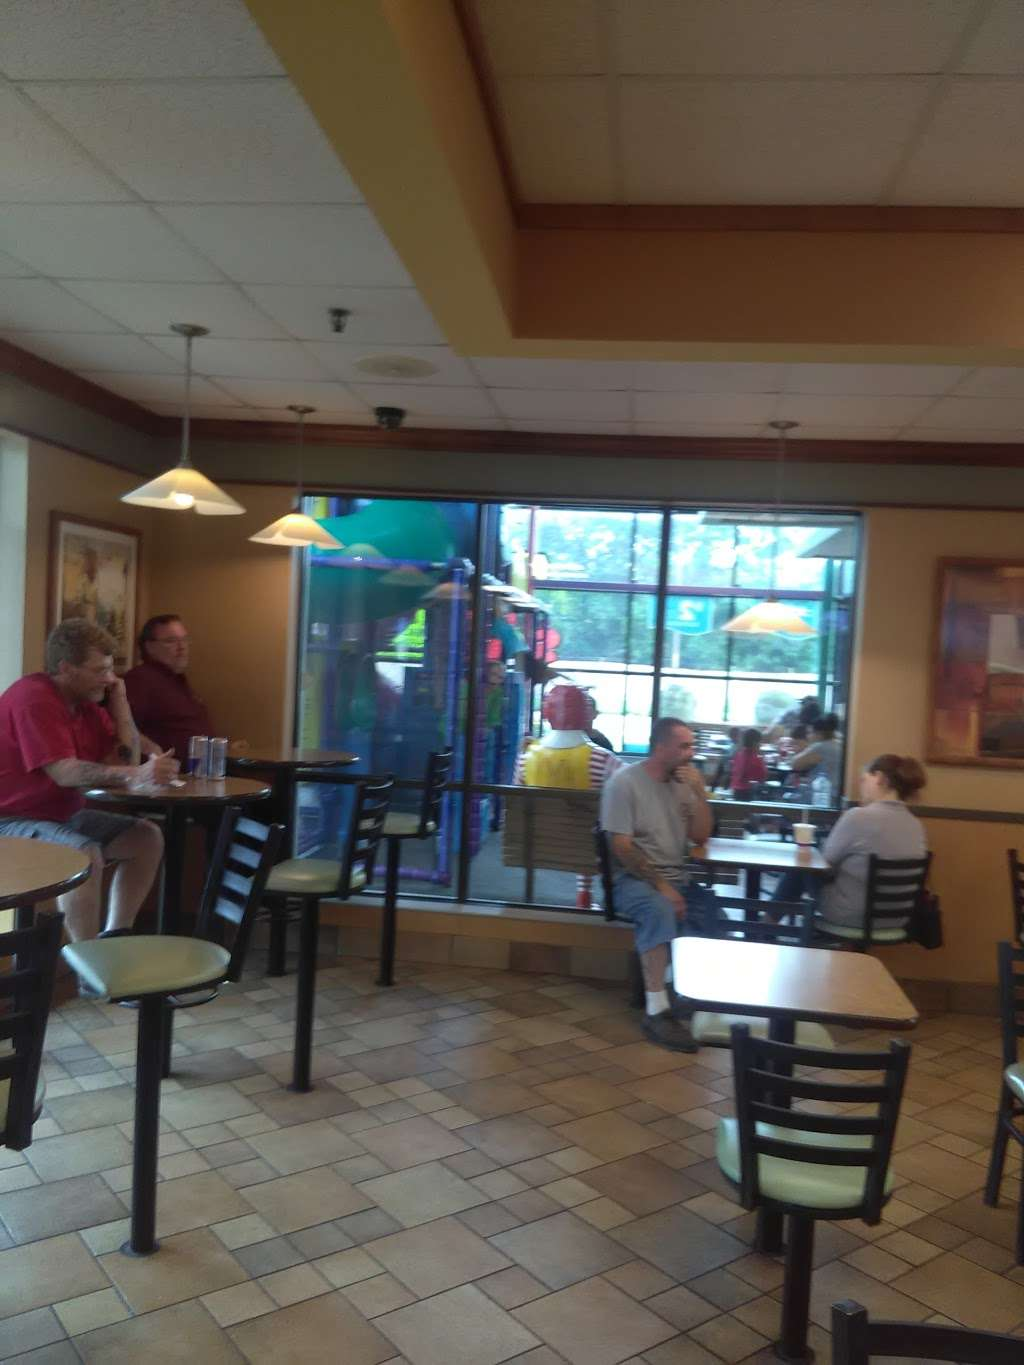 McDonalds - cafe  | Photo 9 of 10 | Address: 3021 Southeastern Ave, Indianapolis, IN 46203, USA | Phone: (317) 631-3484